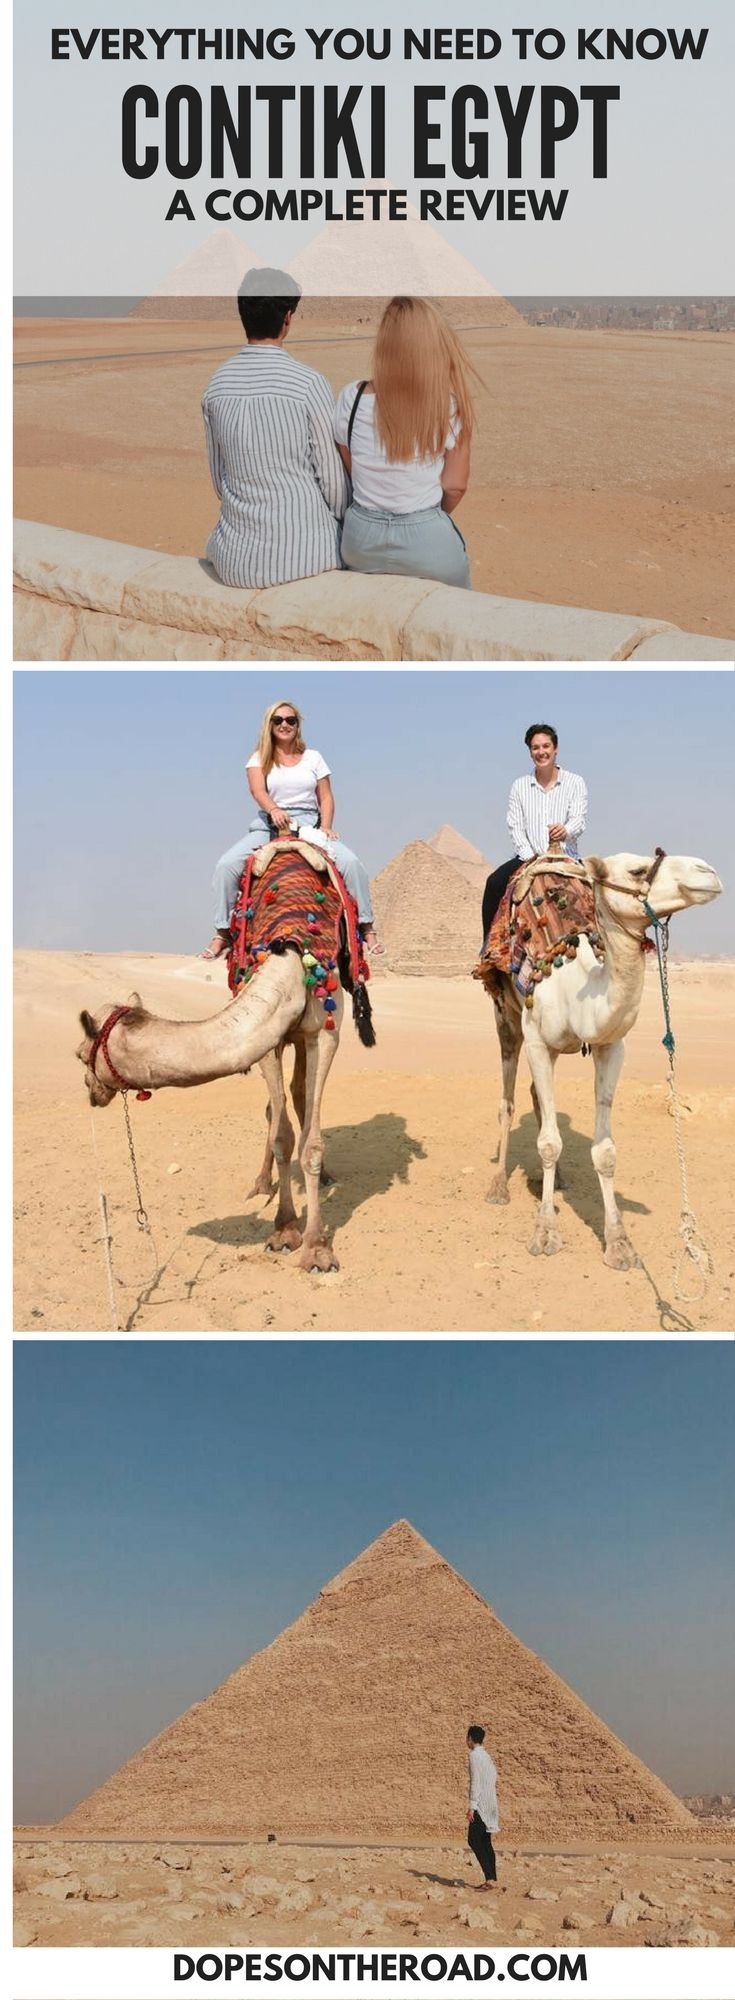 This LGBT friendly Egypt Travel guide walks you through a complete review of Contiki Egypt.